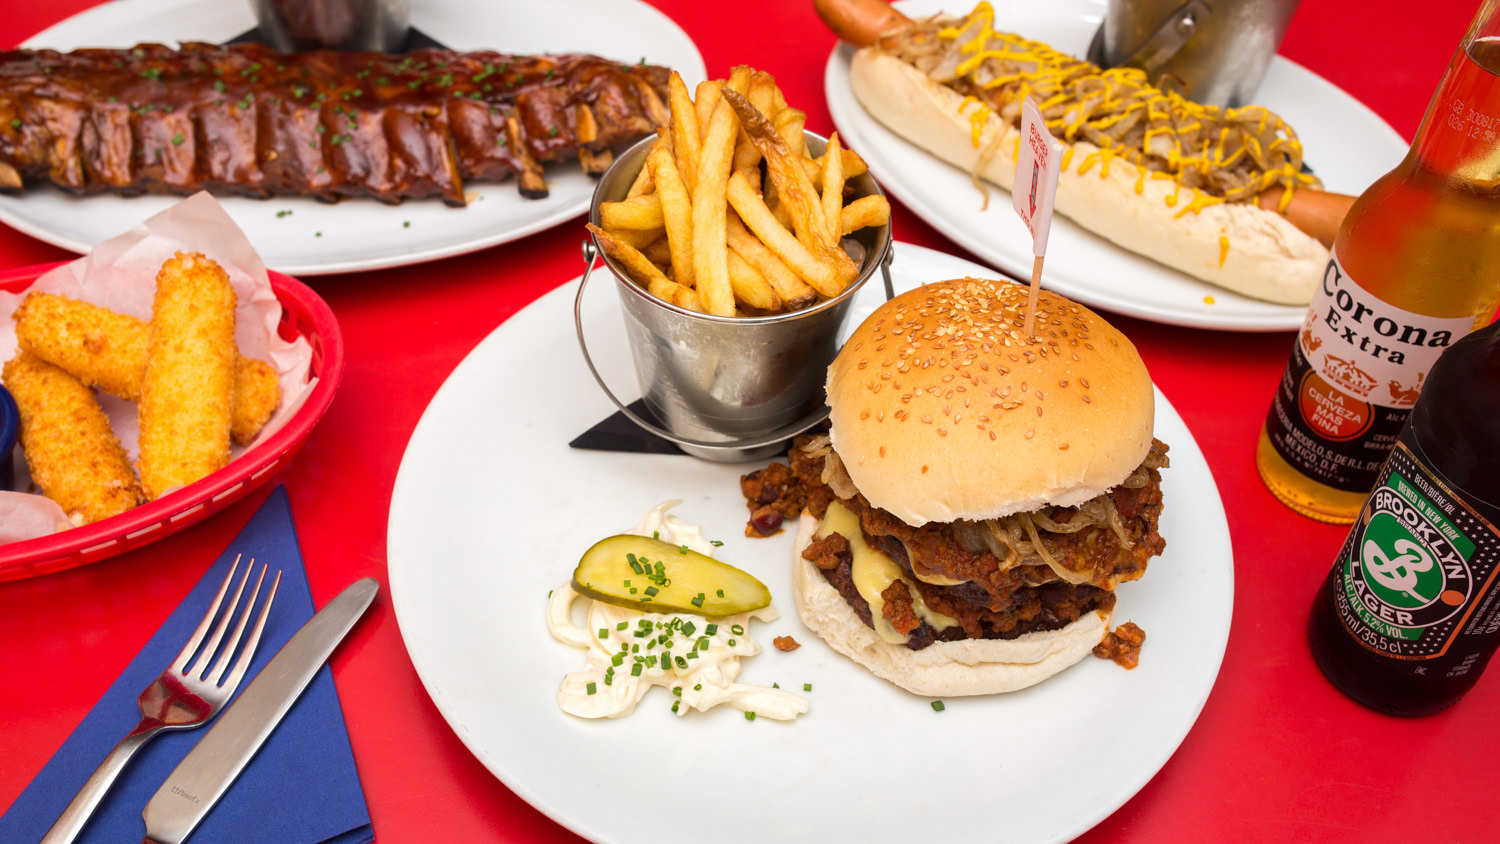 American diner food on a red table